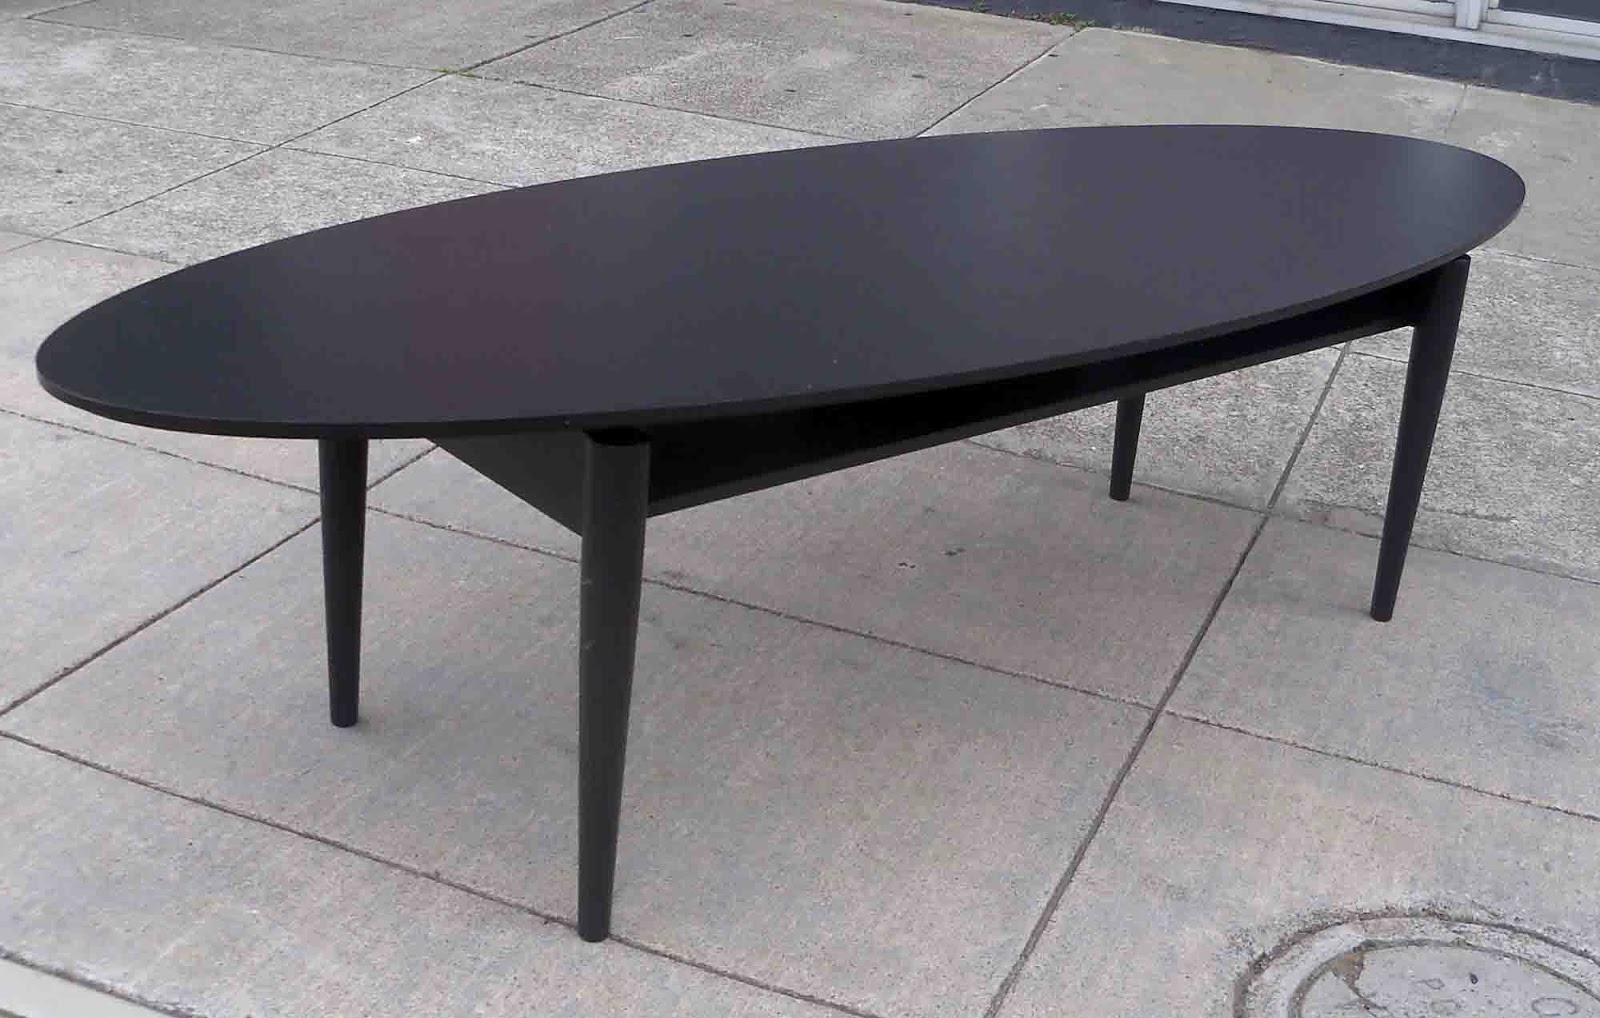 Uhuru Furniture Collectibles Sold Black Oval Coffee Table 50